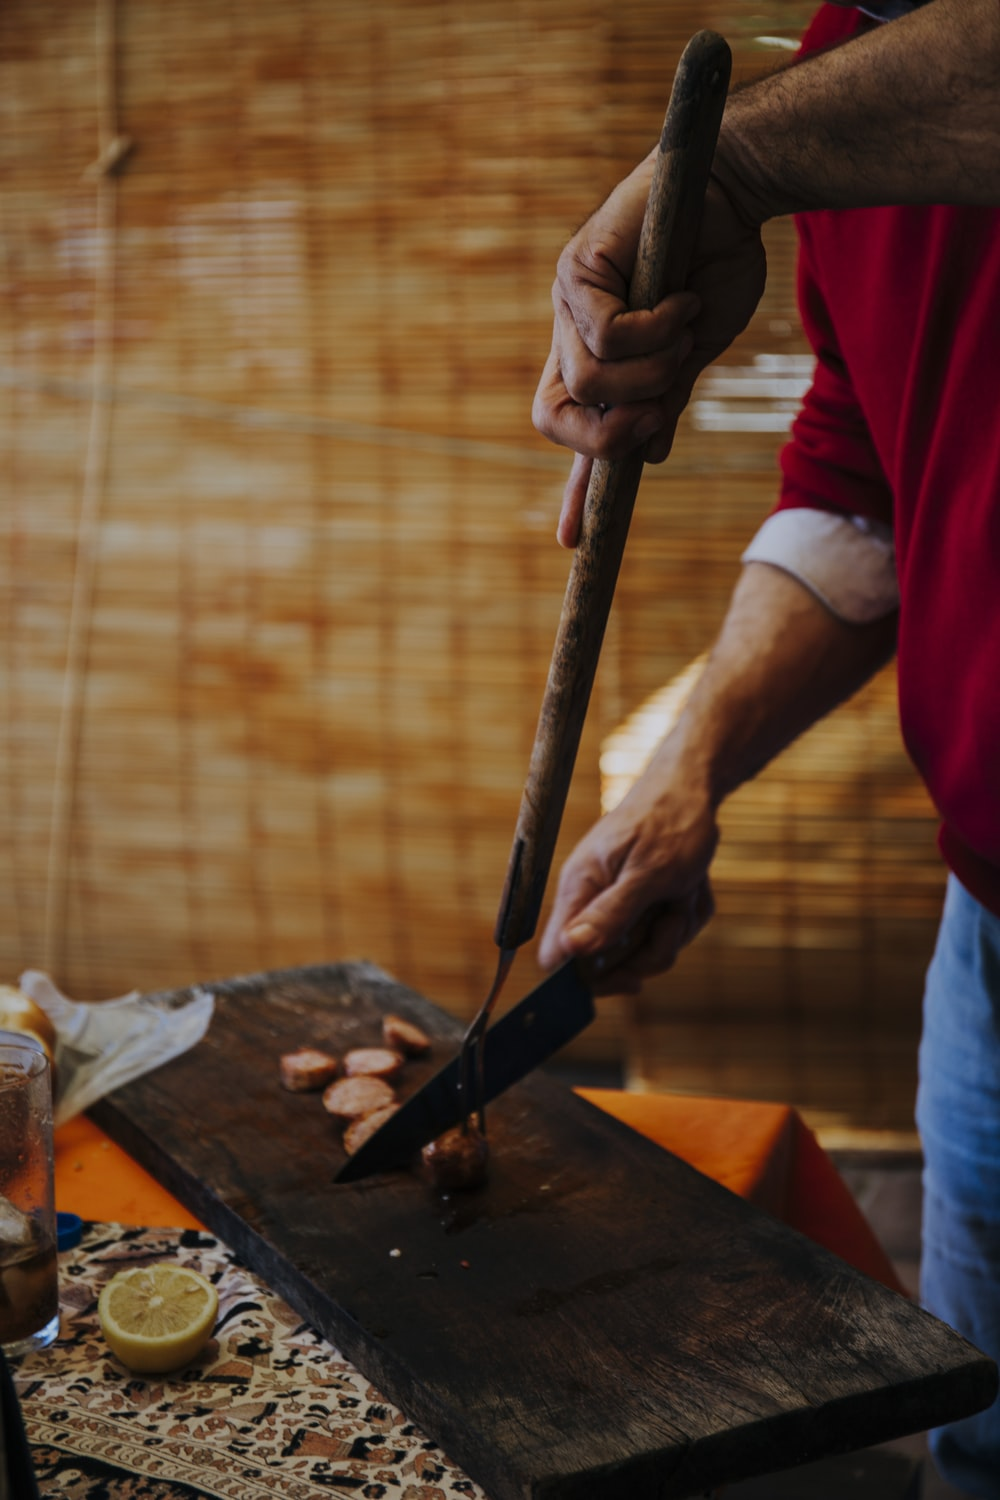 person holding knife slicing meat